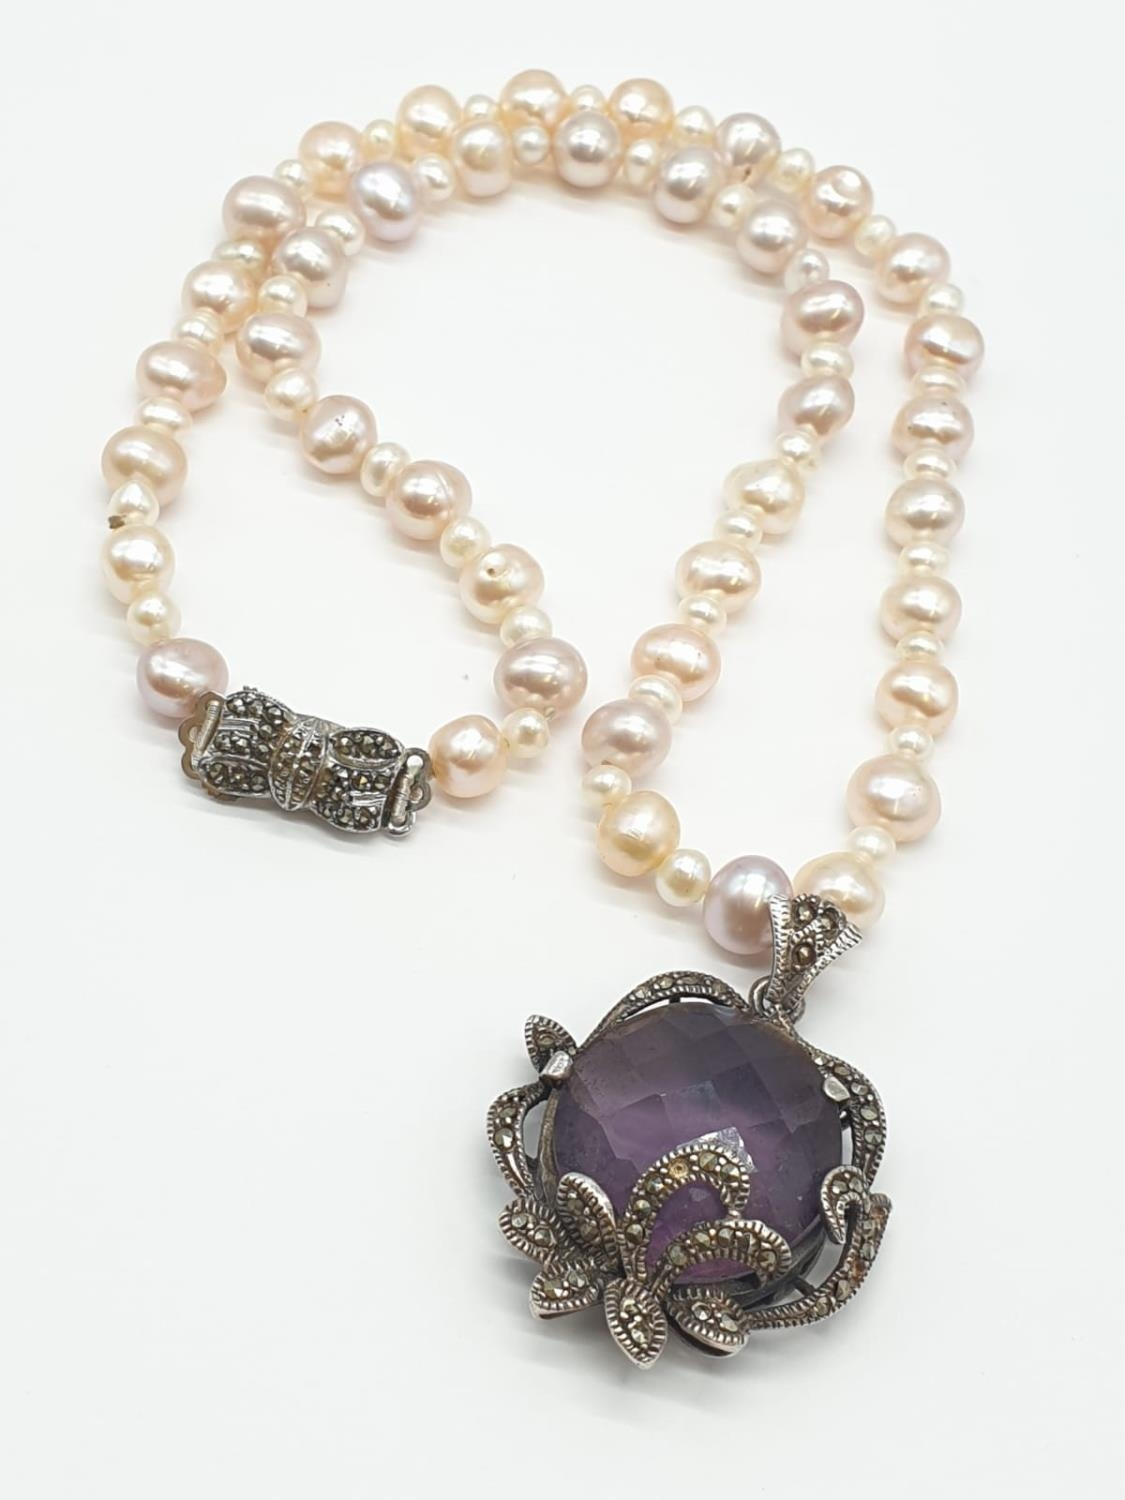 Amethyst and Marcasite NECKLACE with Freshwater Pearl and Silver setting. 40g 44cm